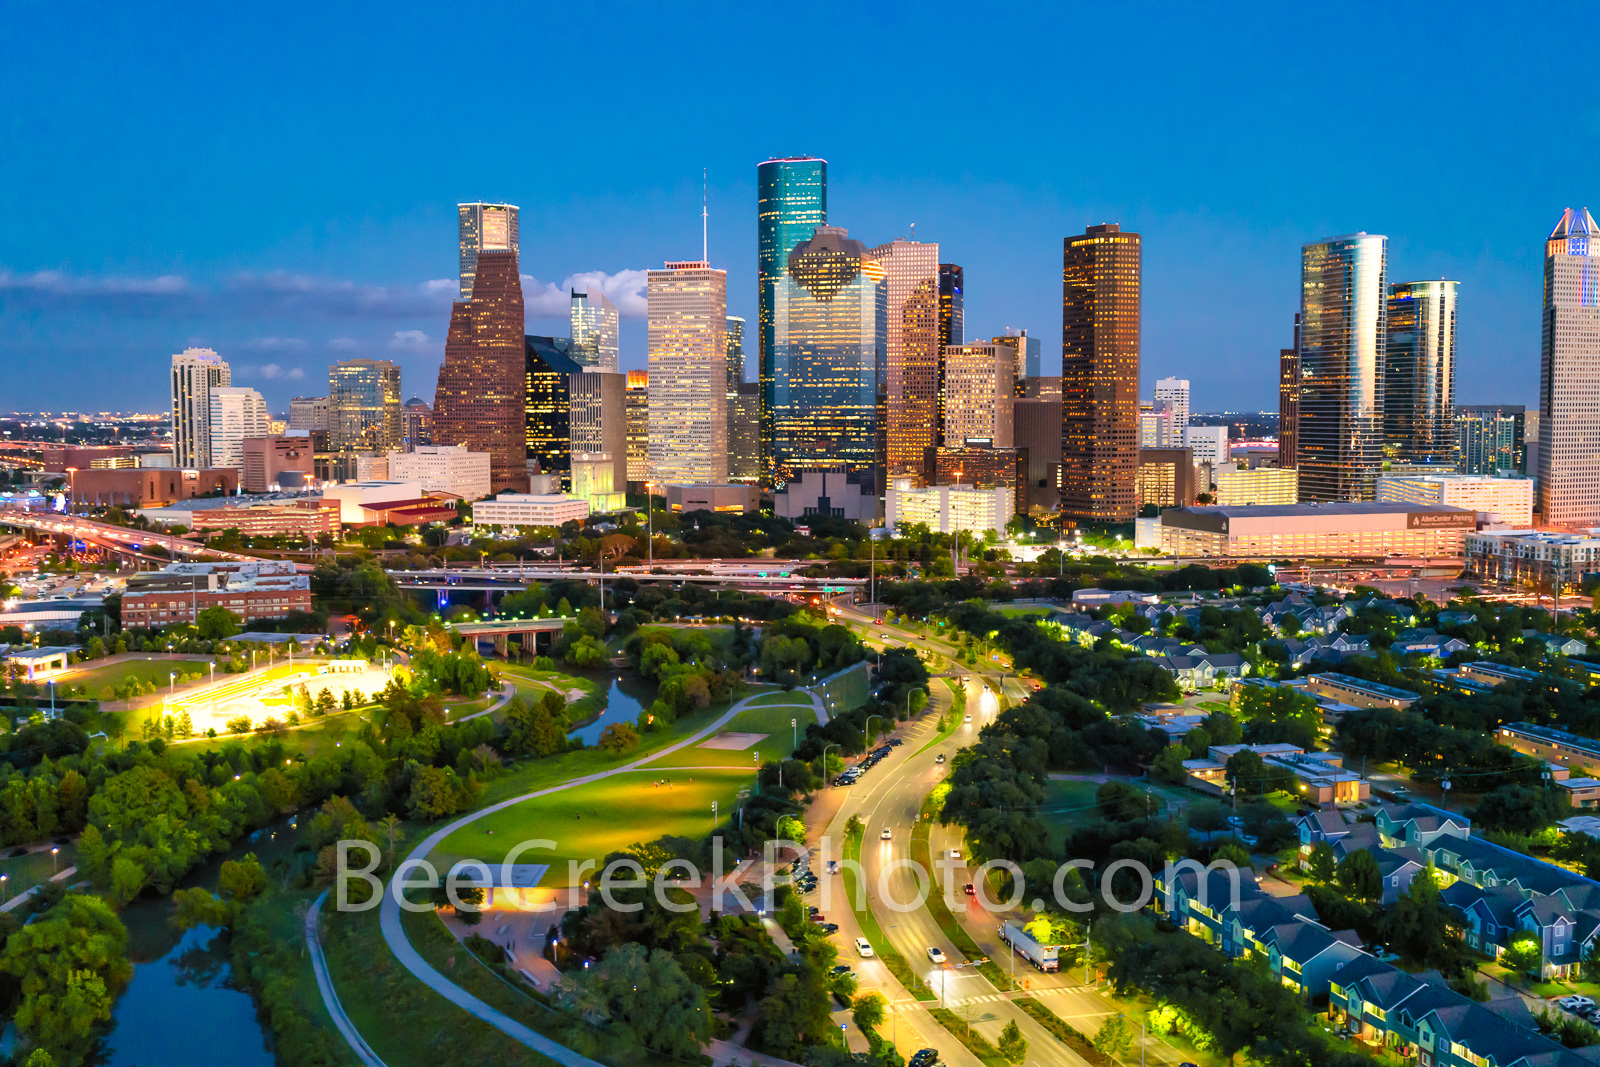 Houston Skyline at Twilight - Right after the sun goes down and the lights come on the buildings in downtown Houston light up...